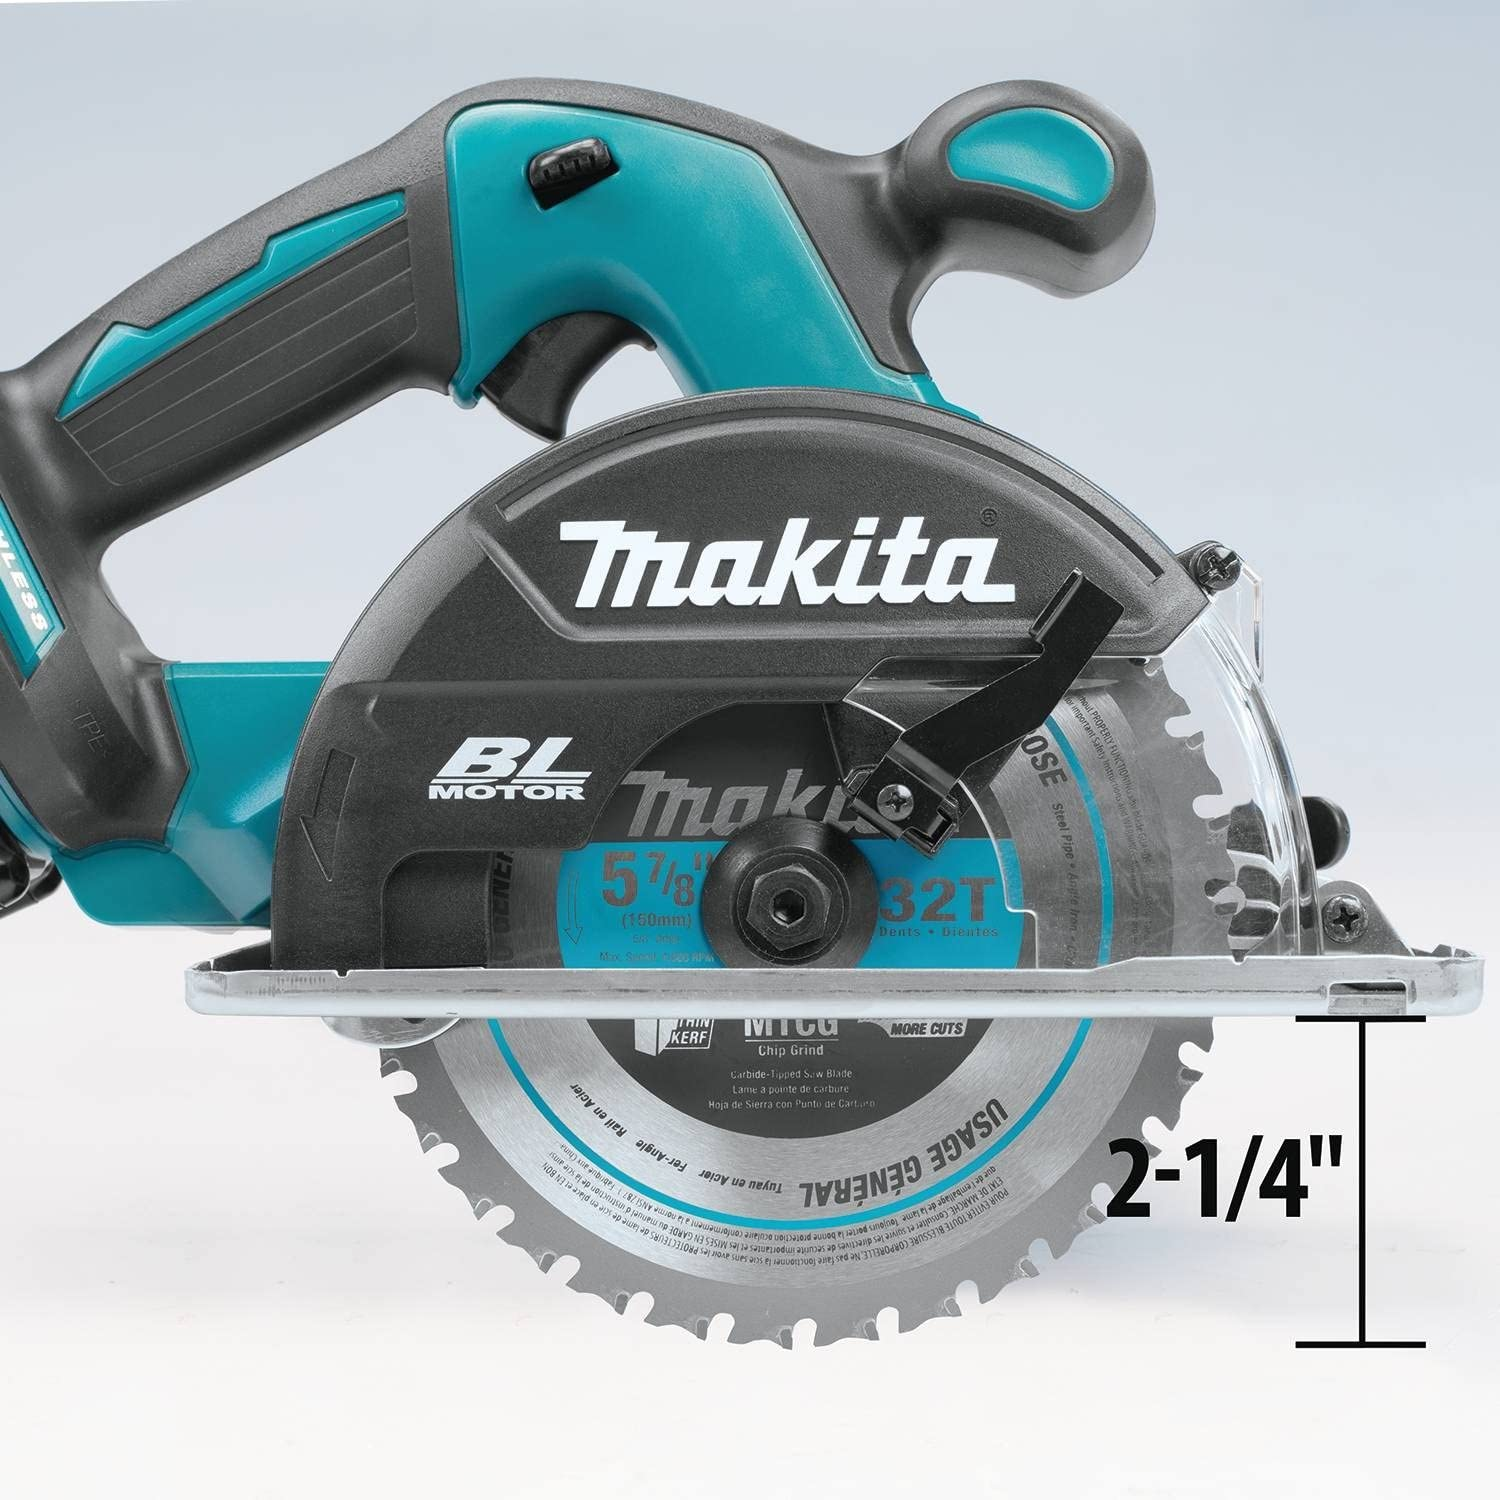 Makita XSC02Z 18V LXT Lithium-Ion Brushless Cordless Metal Cutting Saw, 5-7 8